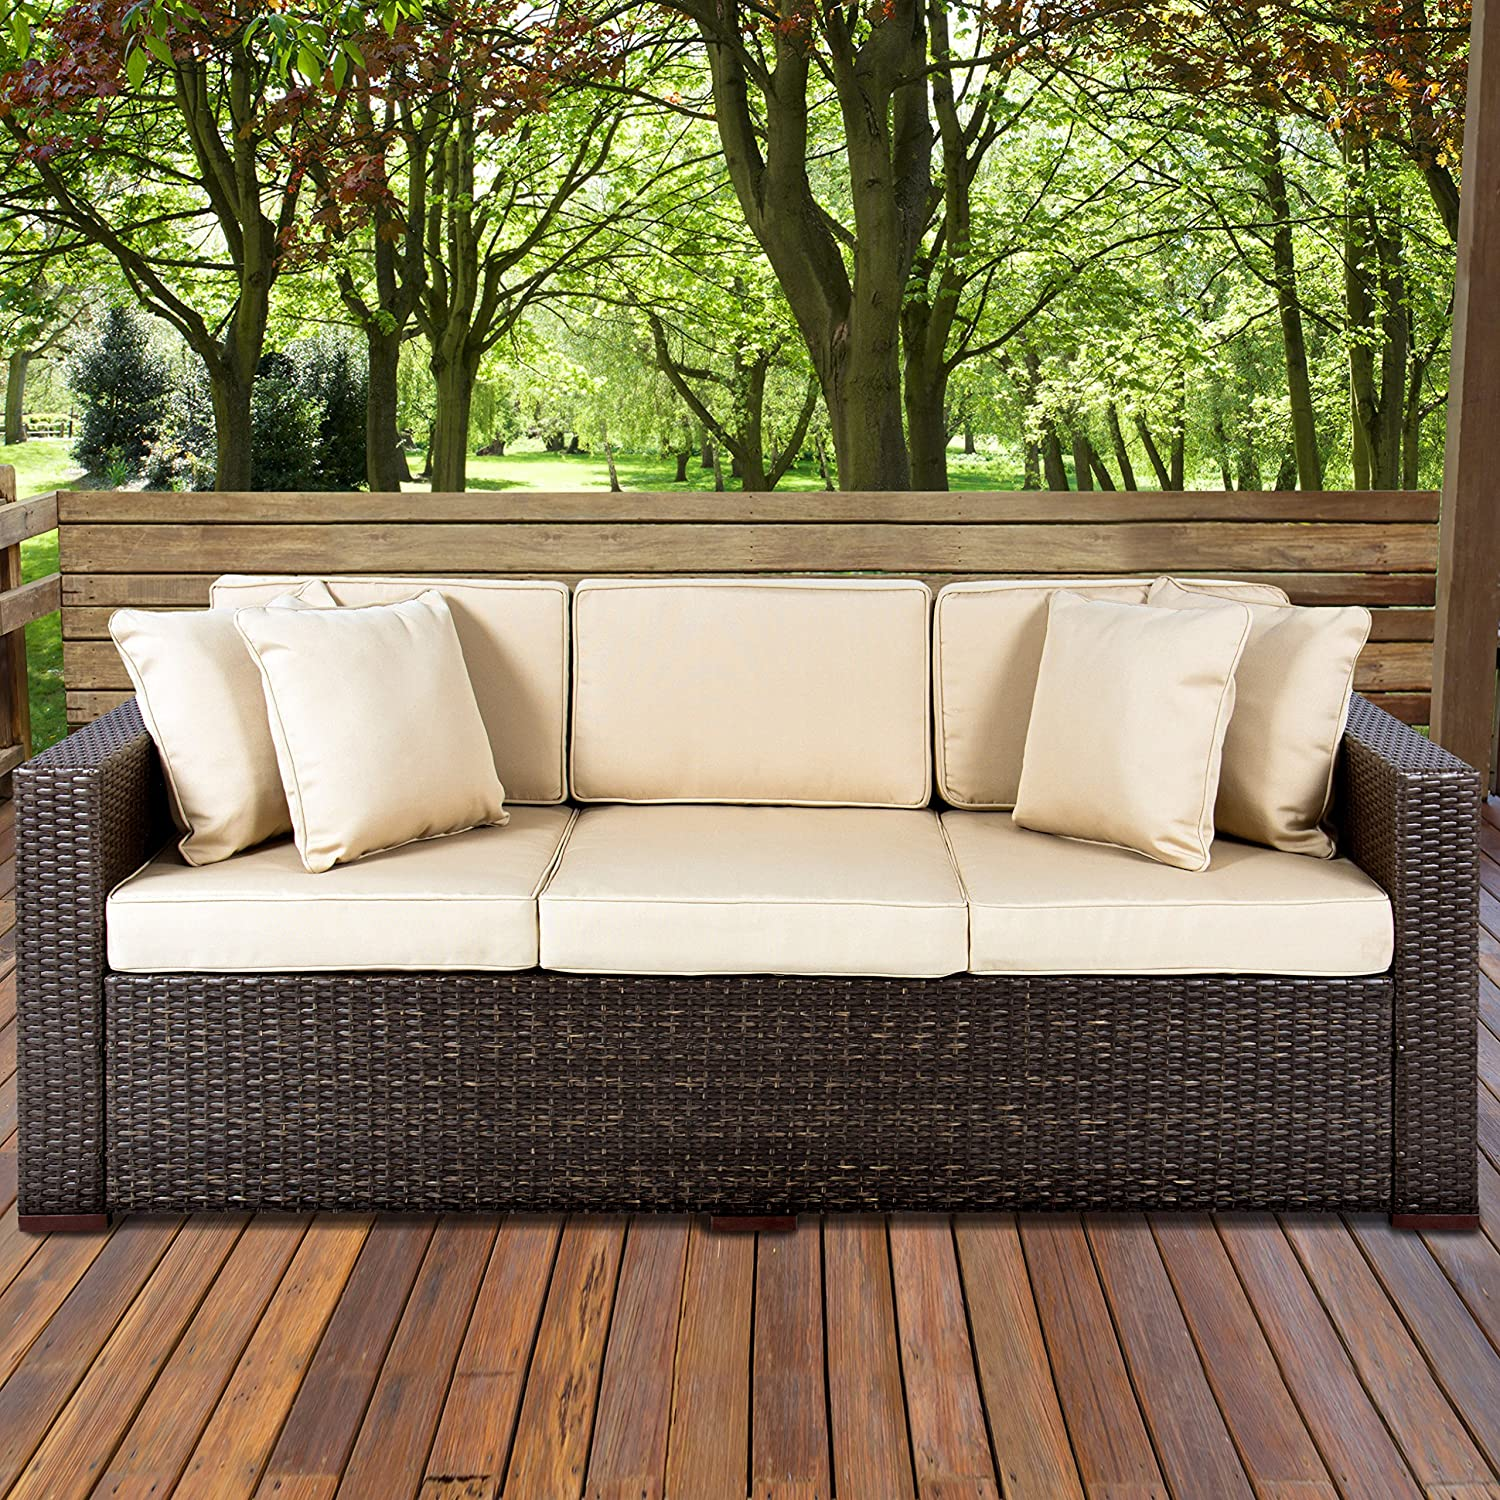 amazoncom best choiceproducts outdoor wicker patio furniture sofa 3 seater luxury comfort brown wicker couch garden outdoor